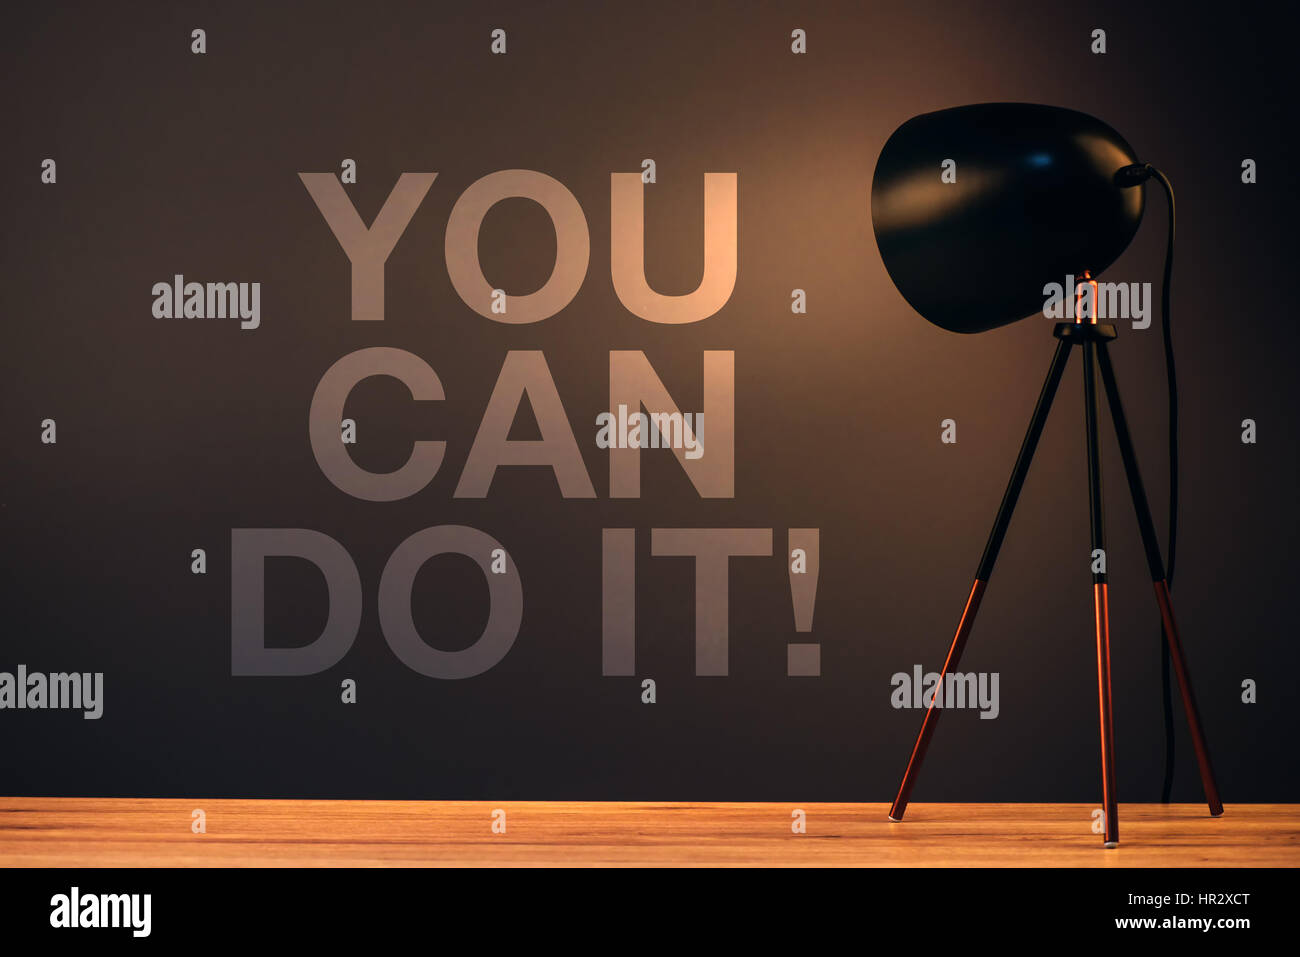 Motivational Quote Stock Photos & Motivational Quote Stock